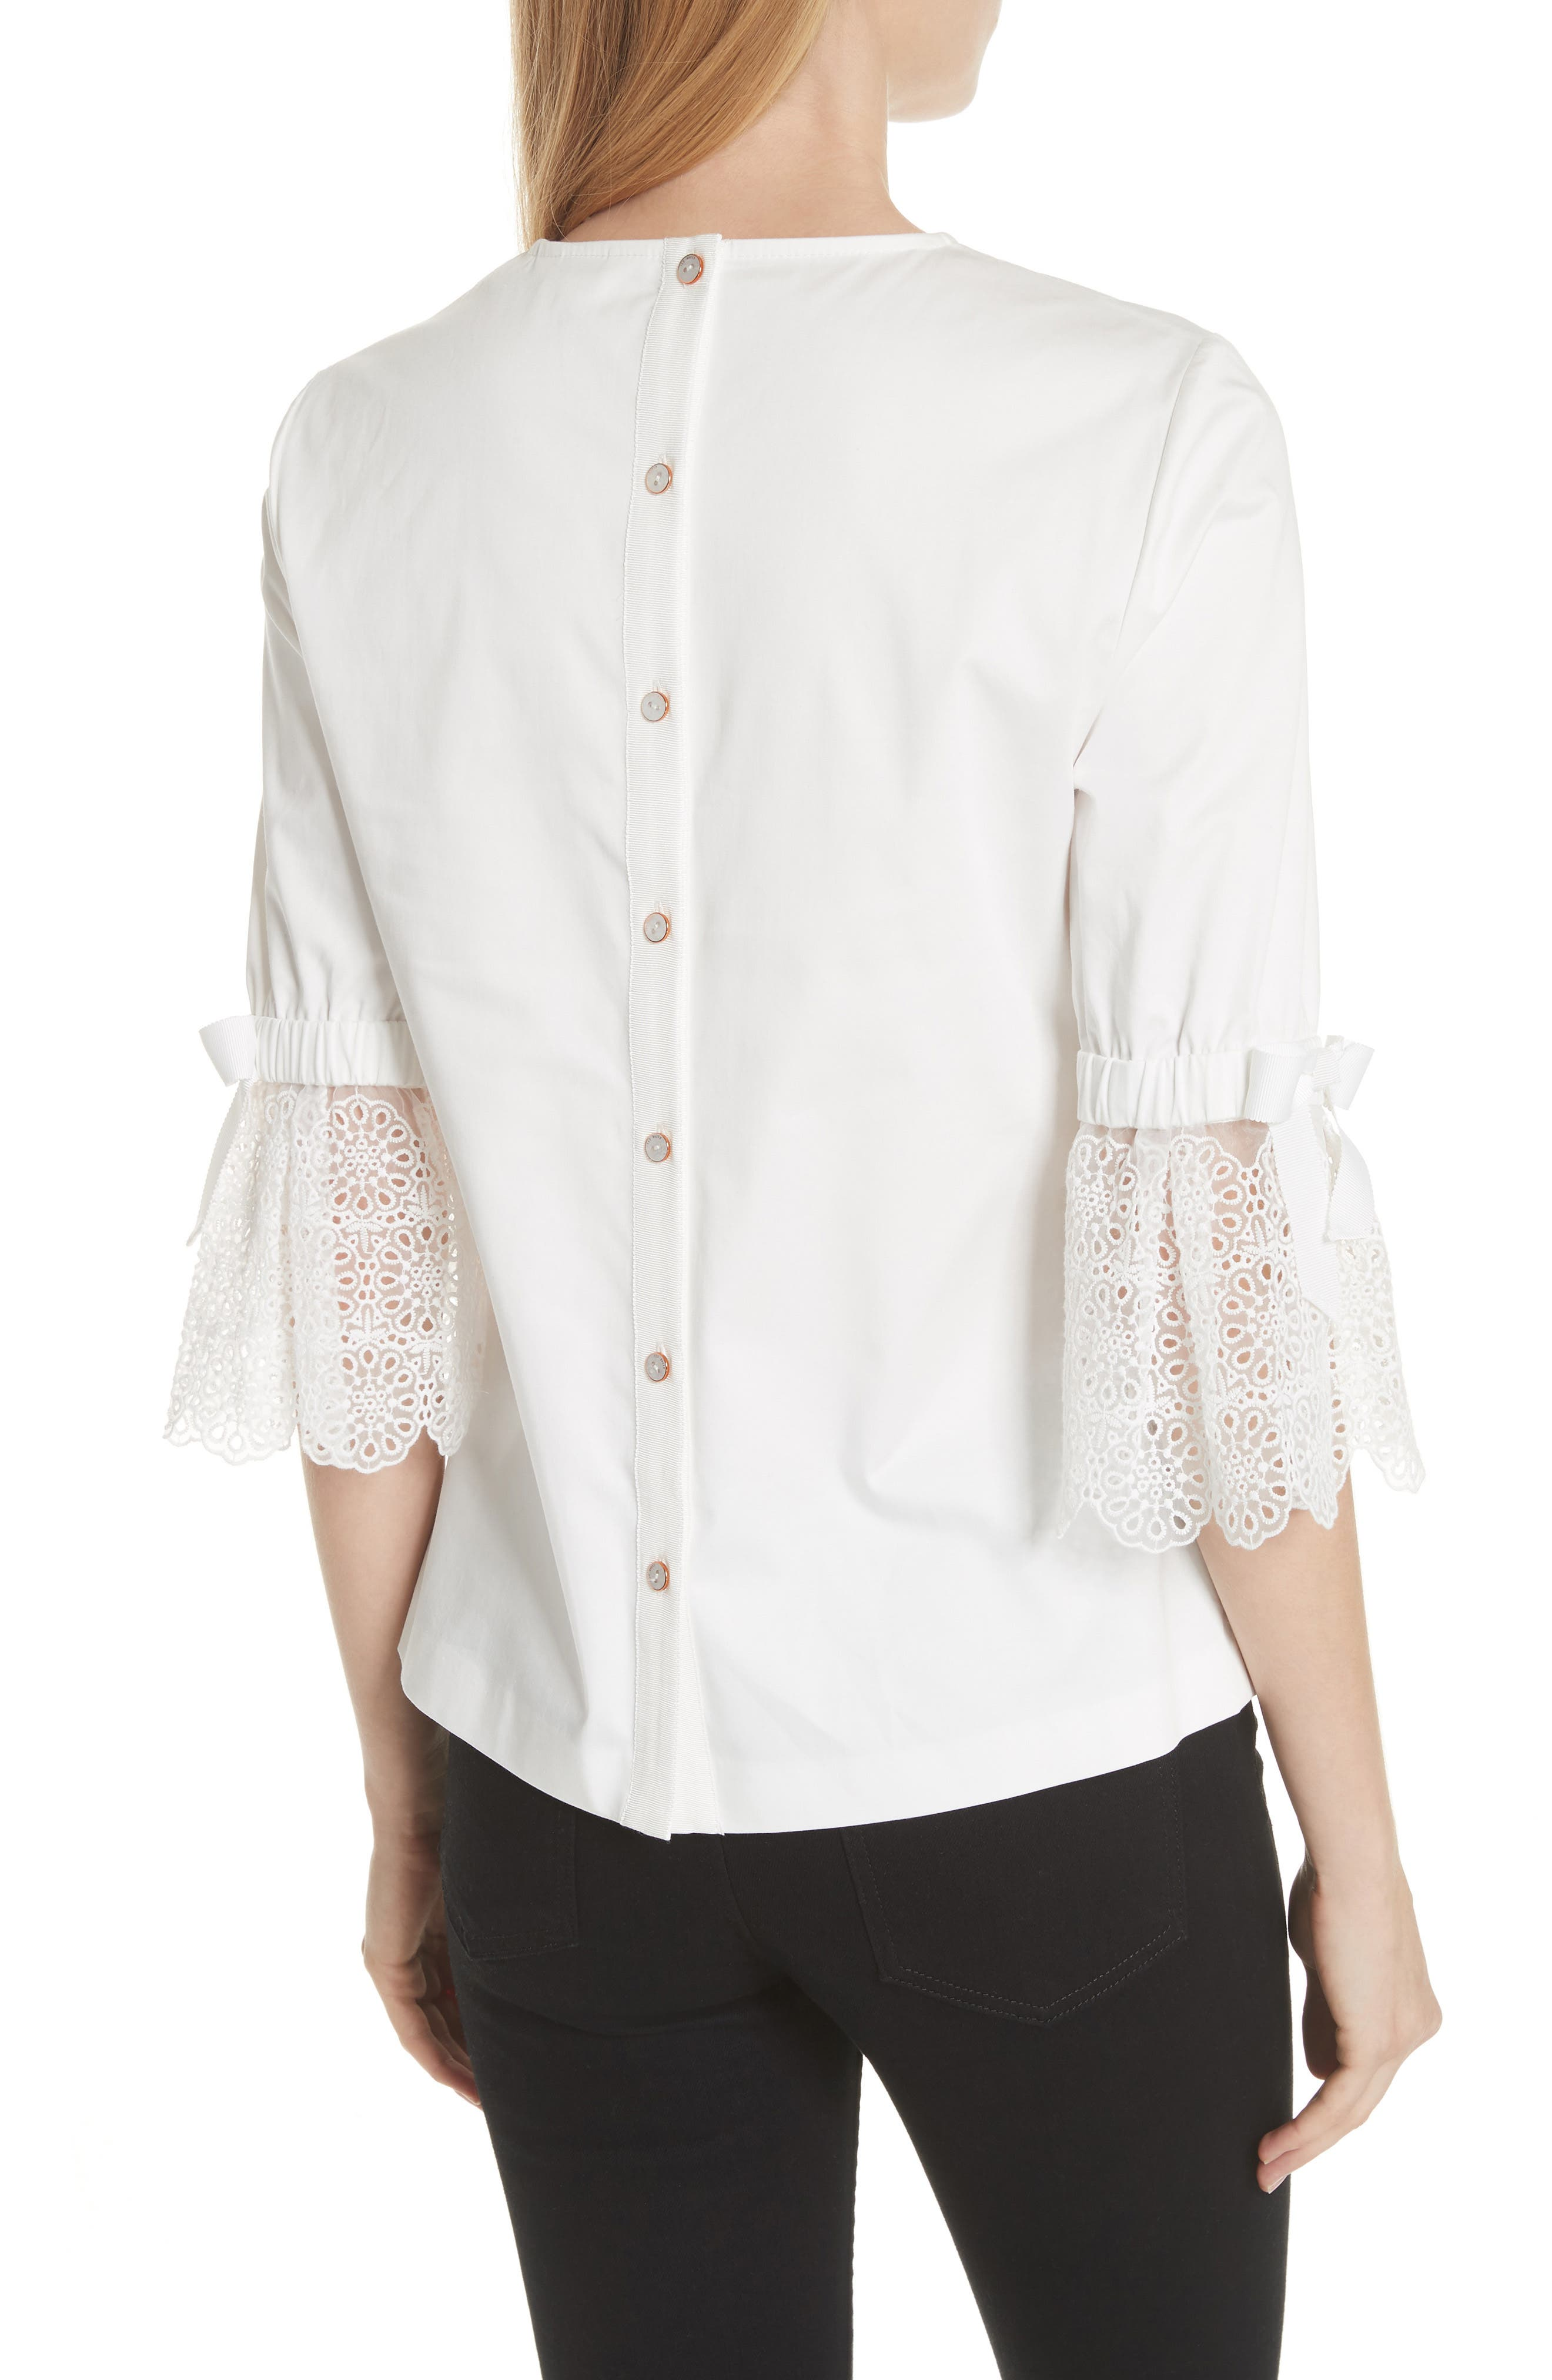 Broderie Lace Bow Sleeve Top,                             Alternate thumbnail 2, color,                             White